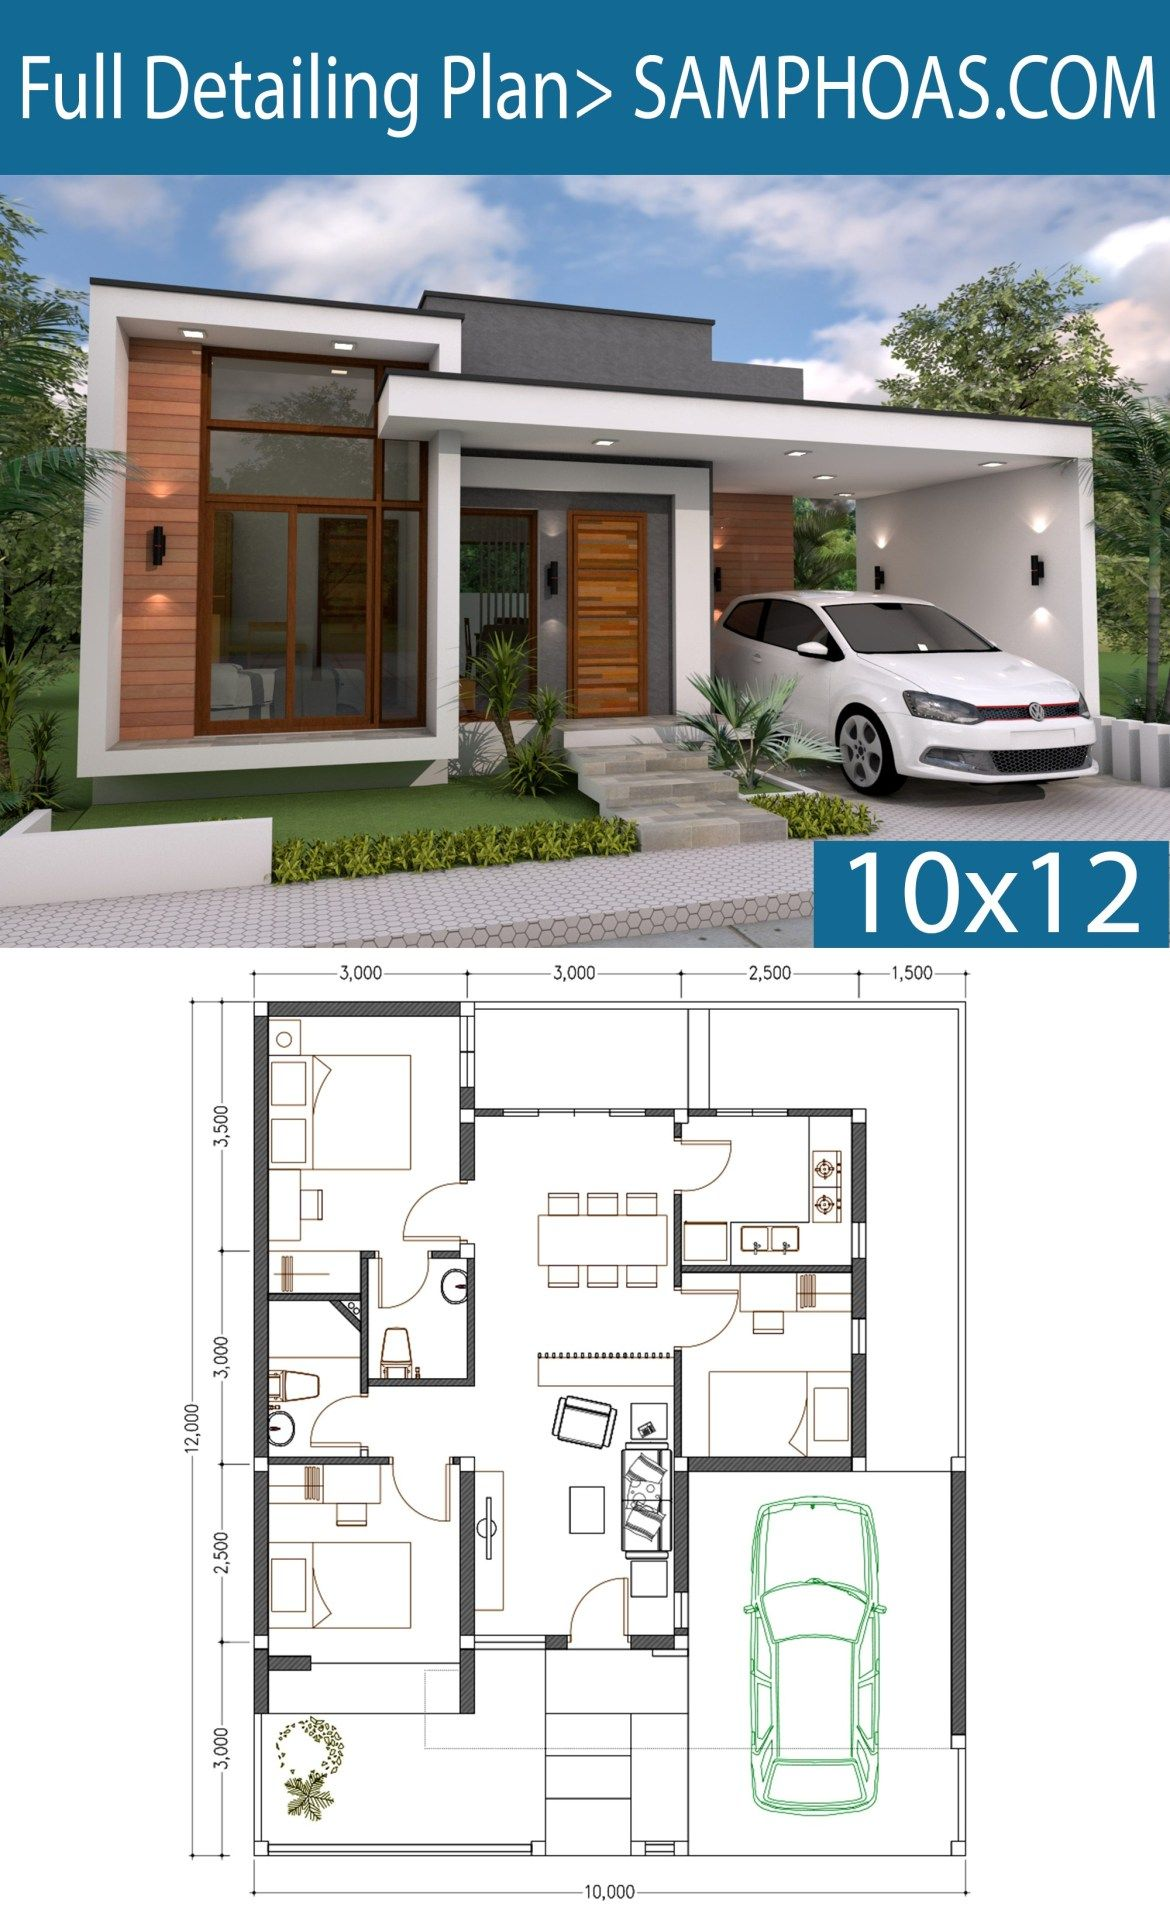 3 Bedrooms Home Design Plan 10x12m Samphoas Plansearch Bungalow House Plans Simple House Design Modern Style House Plans